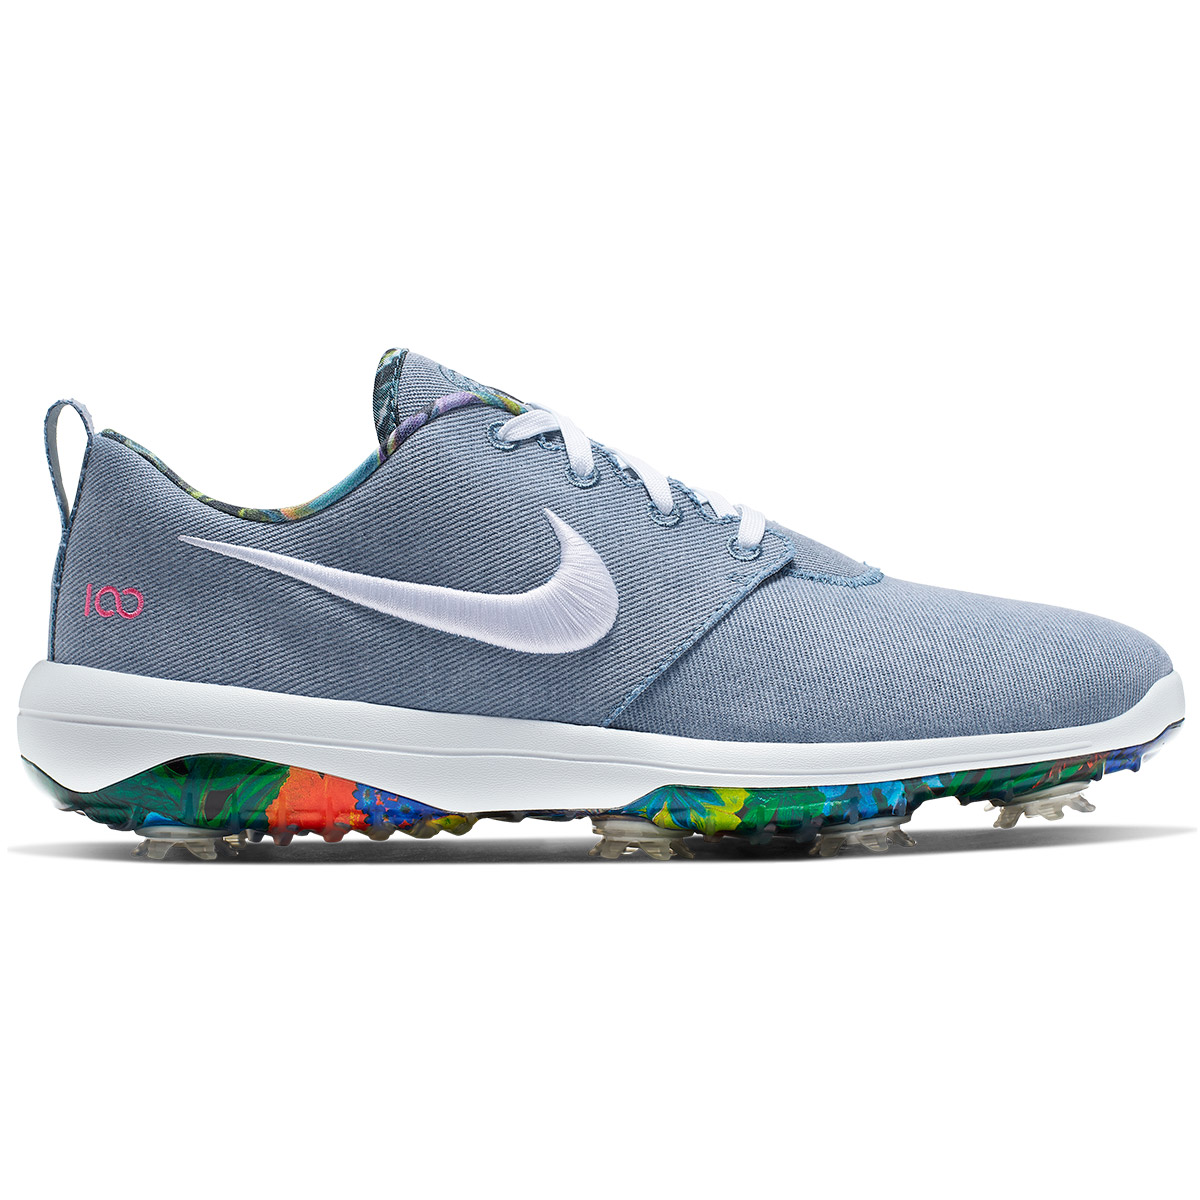 Nike Golf Roshe G Tour NRG U.S.Open Shoes